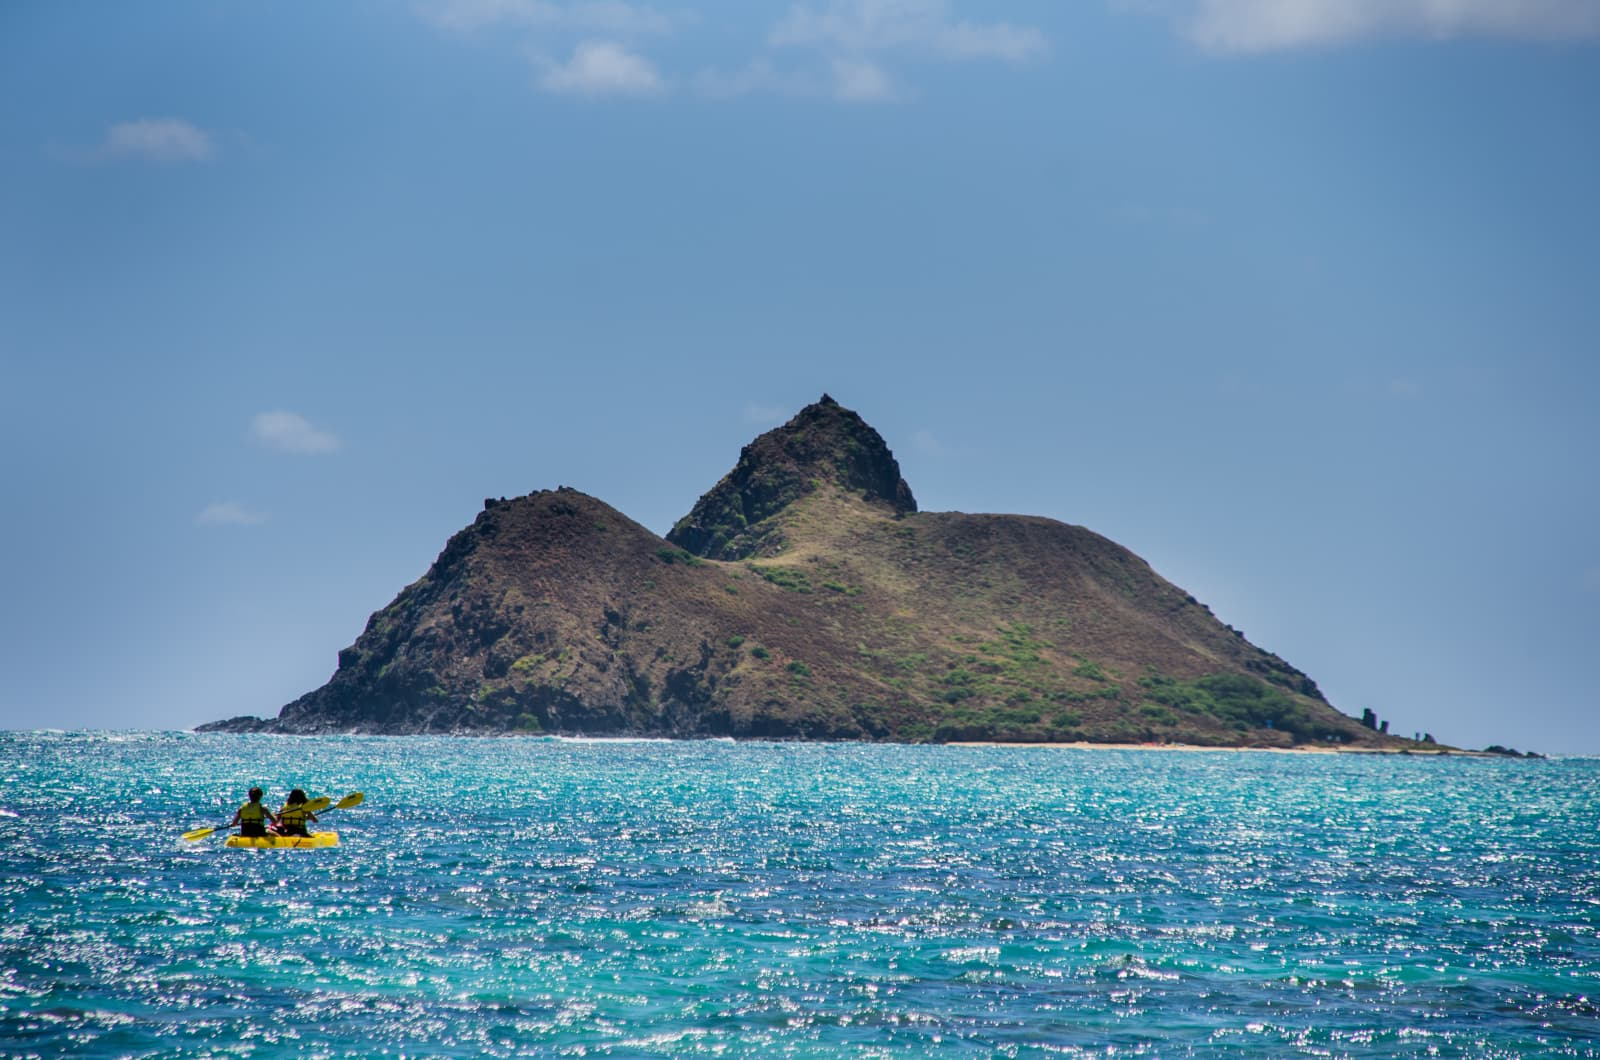 Two People In Boat Paddling To Small Island